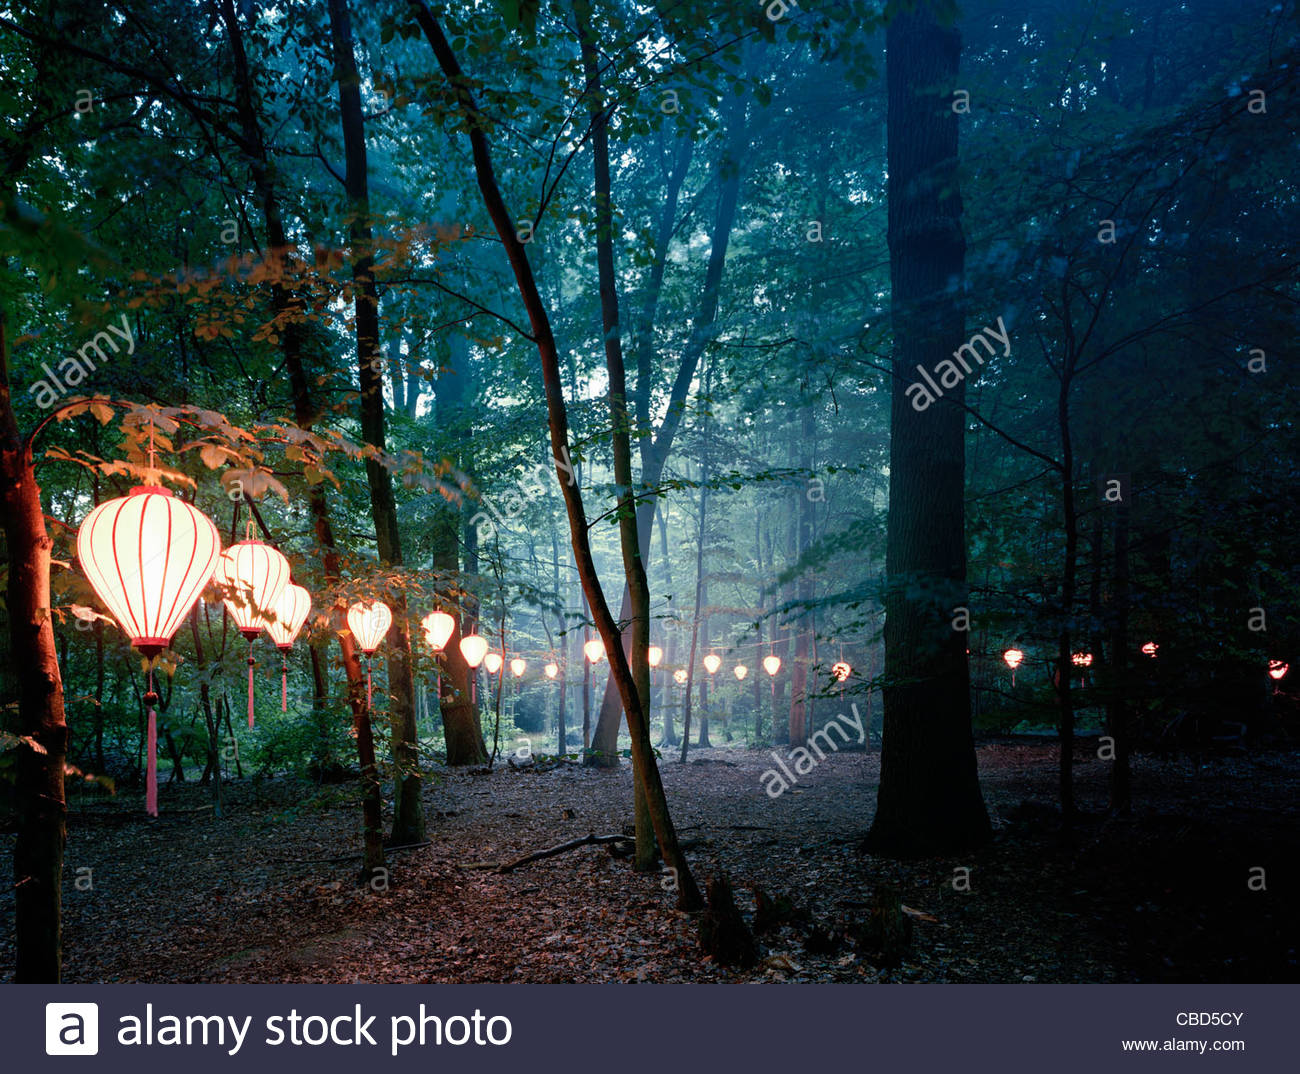 Lights hanging from trees in forest Stock Photo: 41471611 ...